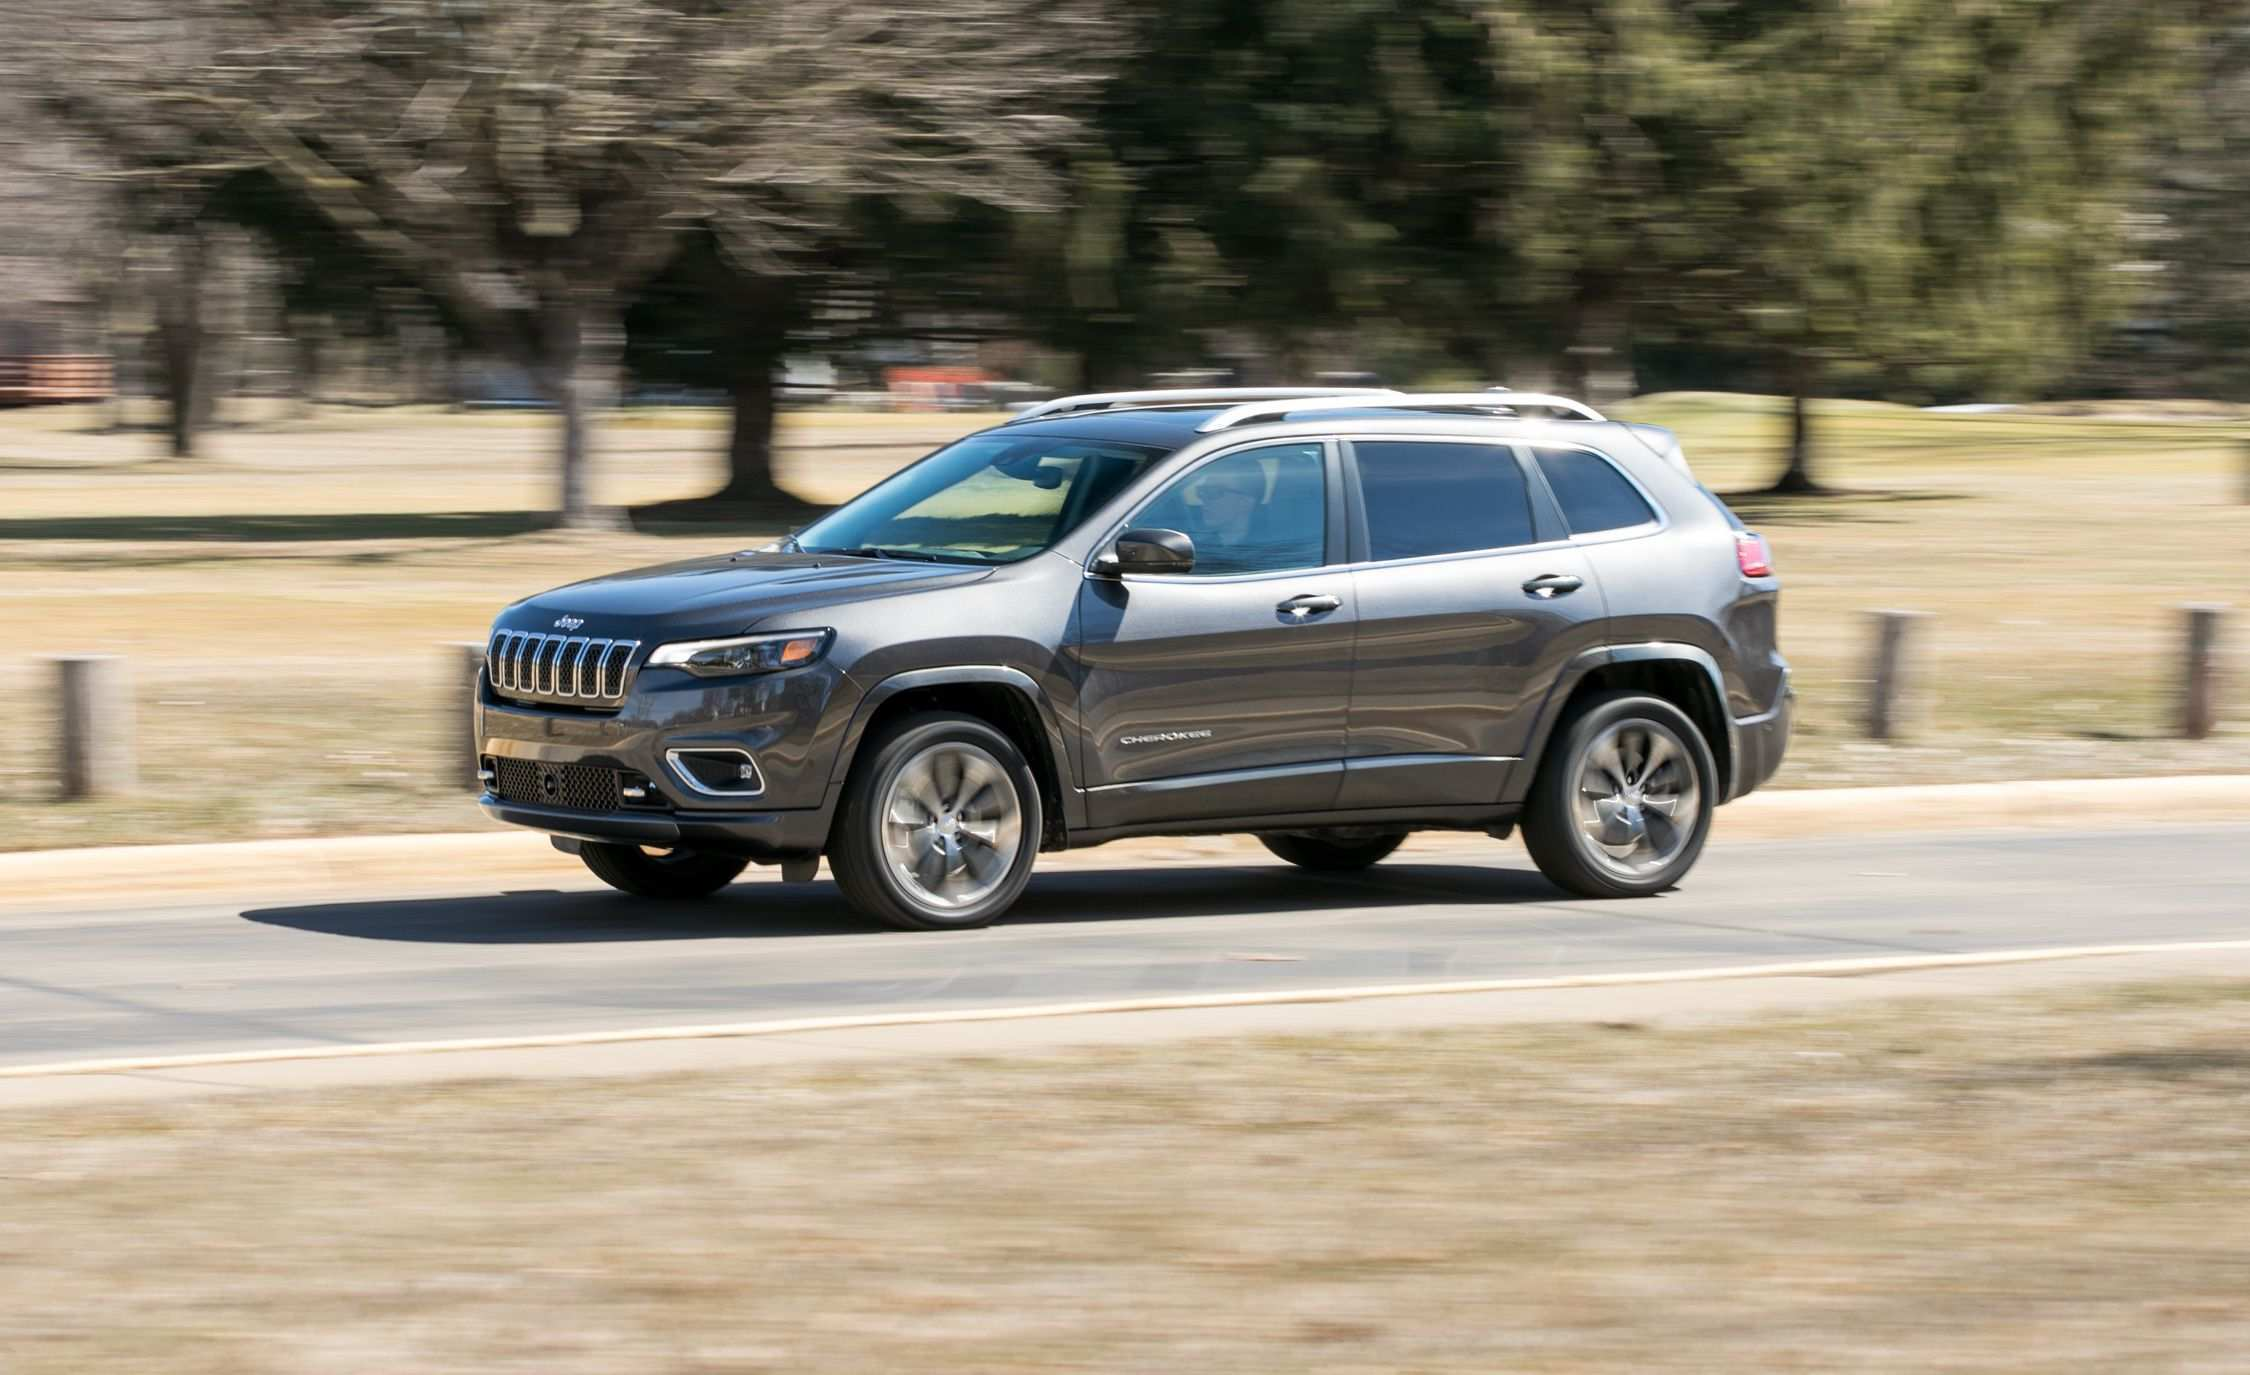 96 The 2019 Jeep 2 0 Turbo Mpg Review And Release Date